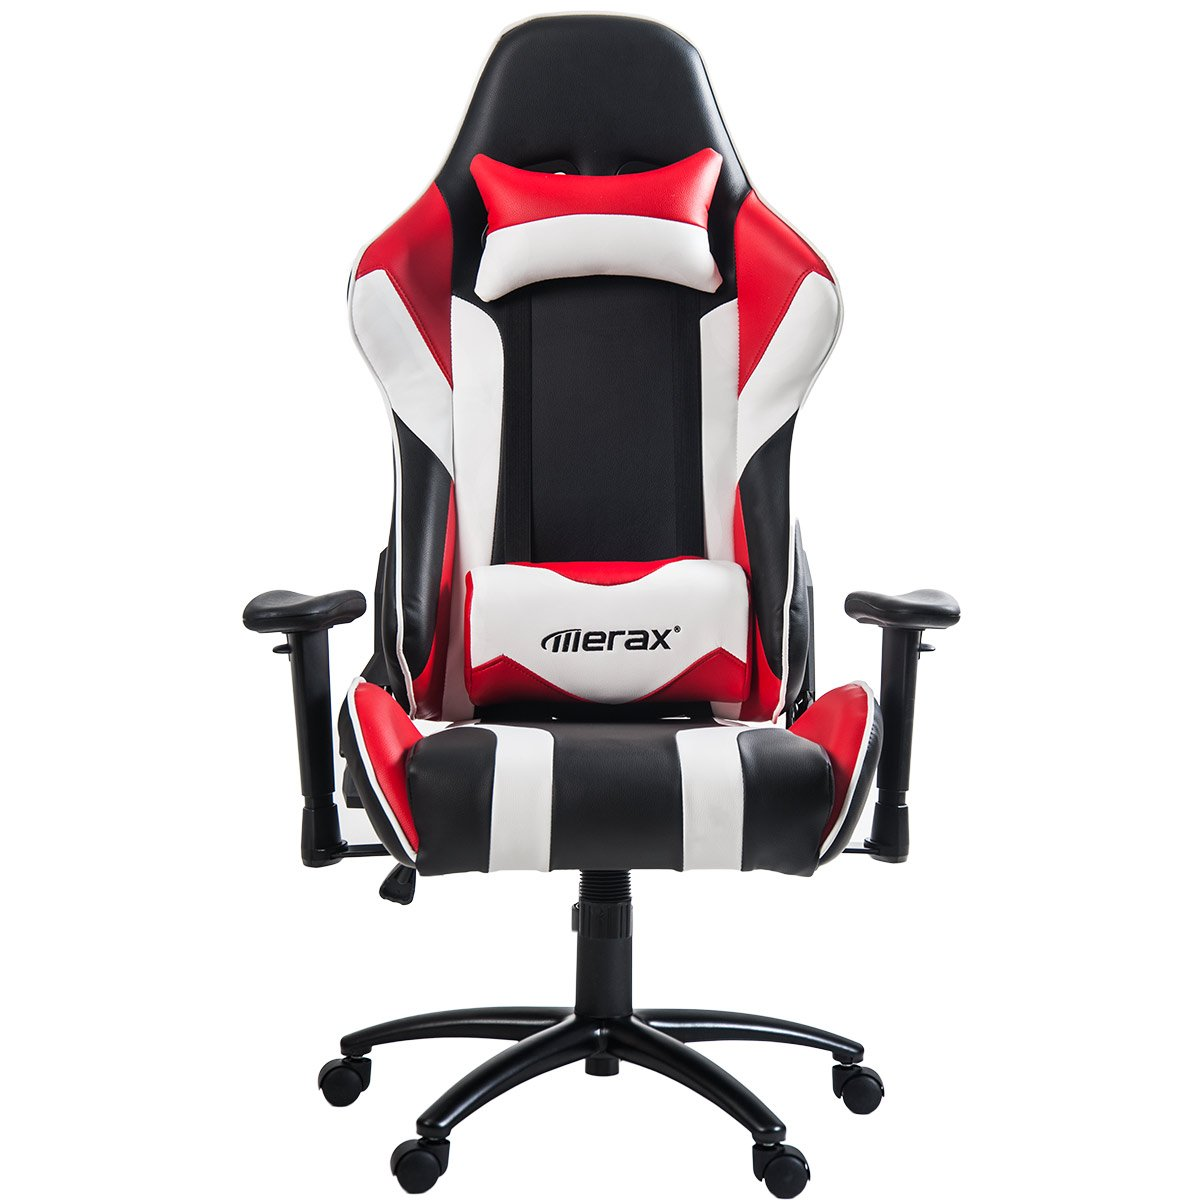 Merax High Back Racing Style Gaming Chair Metal Frame with Lumbar Support and Headrest (Red)